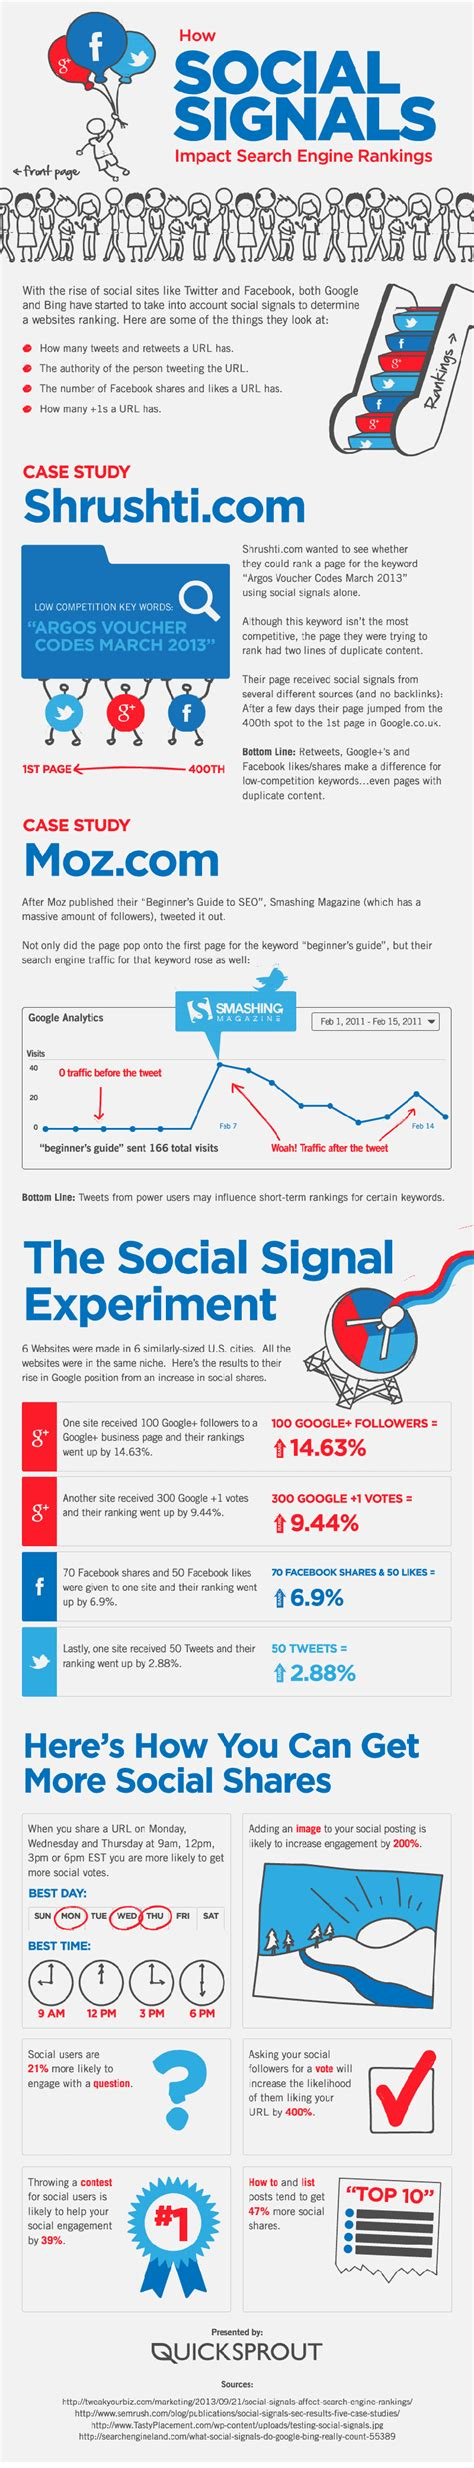 On Search Engine Rankings by How Social Media Impacts Search Engine Rankings